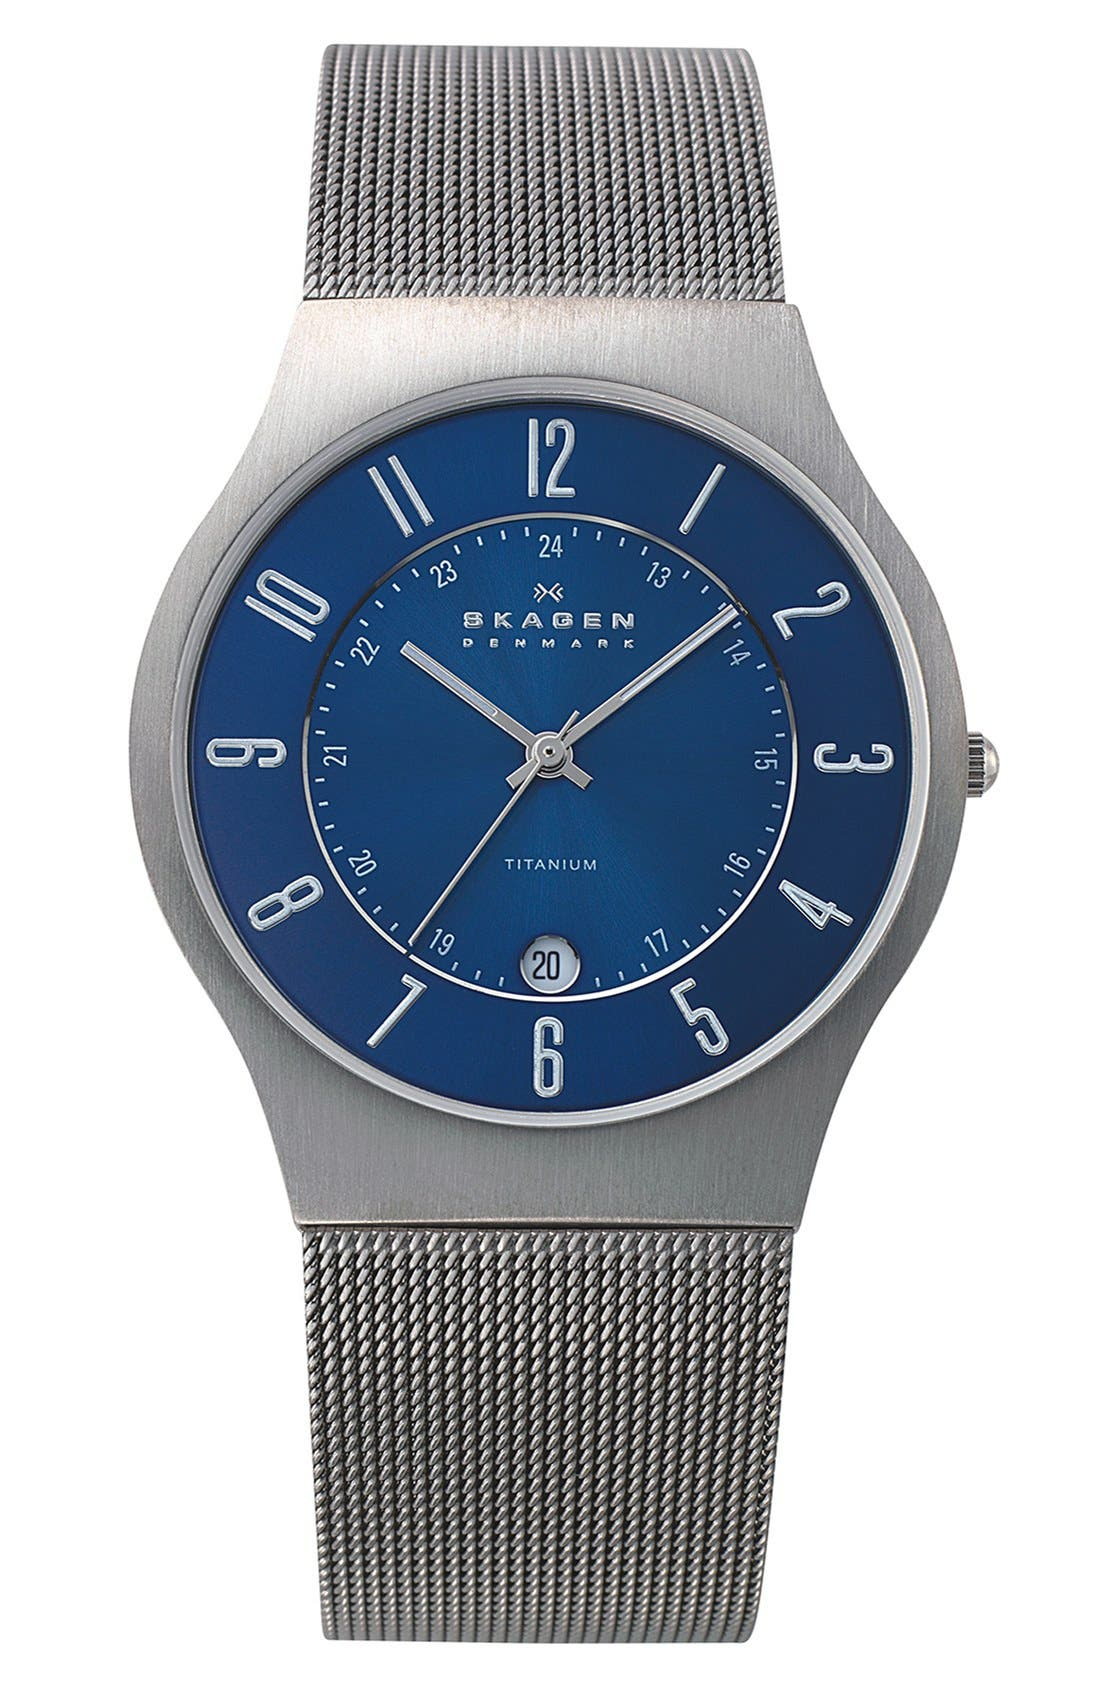 'Grenen' Titanium Case Watch,                             Main thumbnail 8, color,